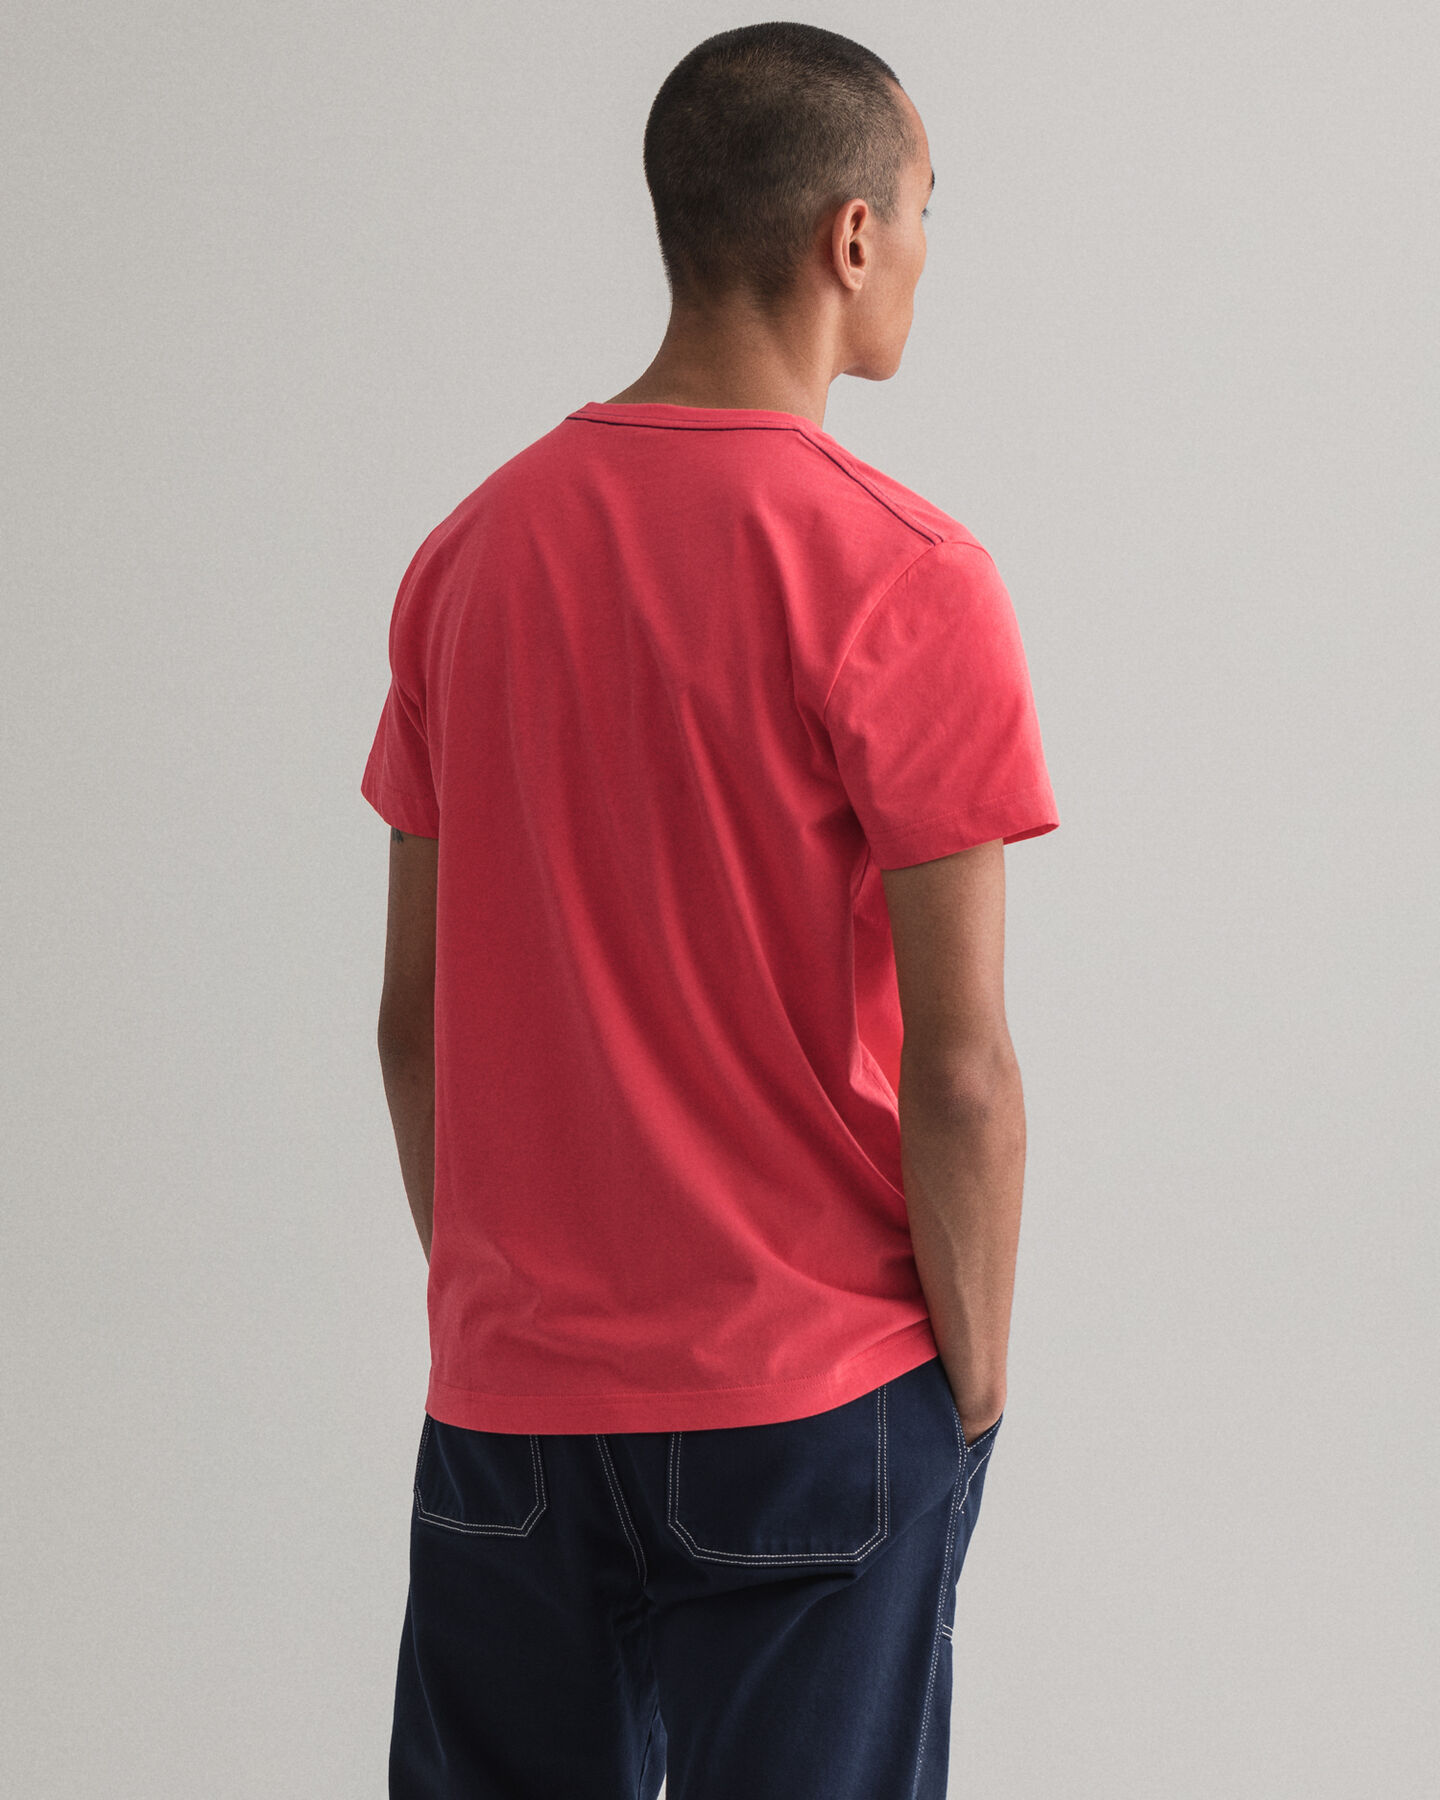 Arch Outline T-Shirt